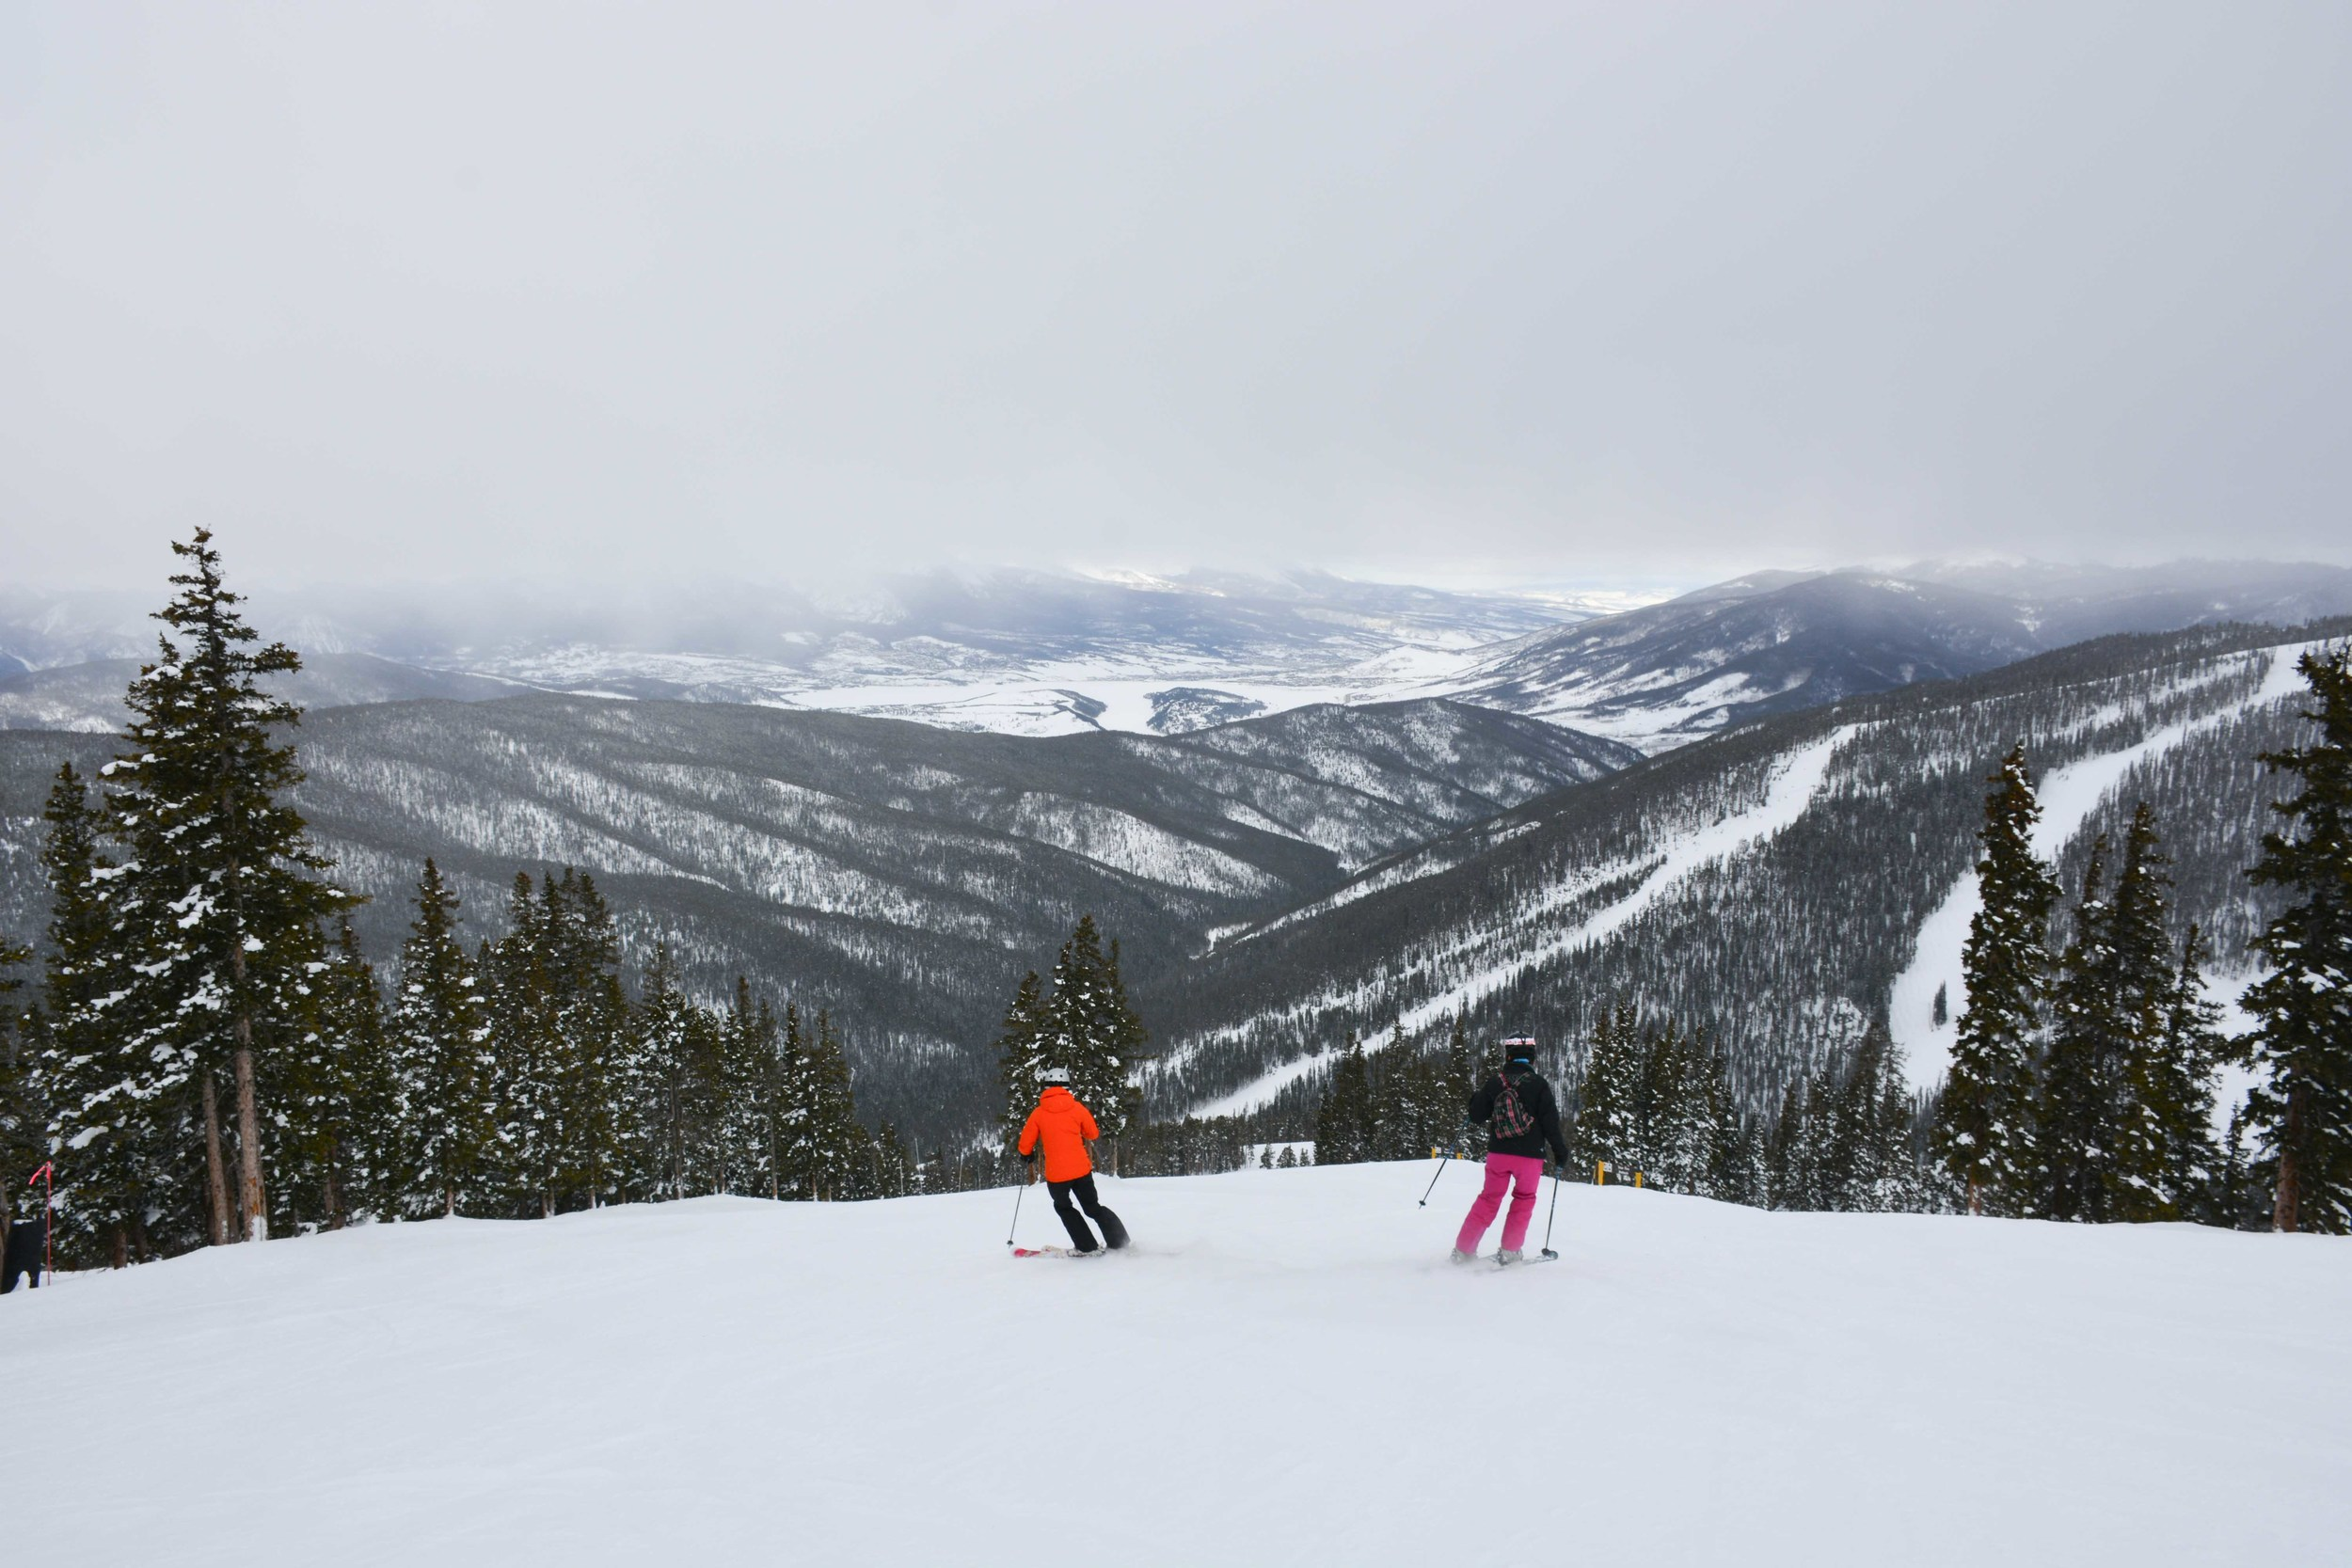 Ladies Ripping the Pow